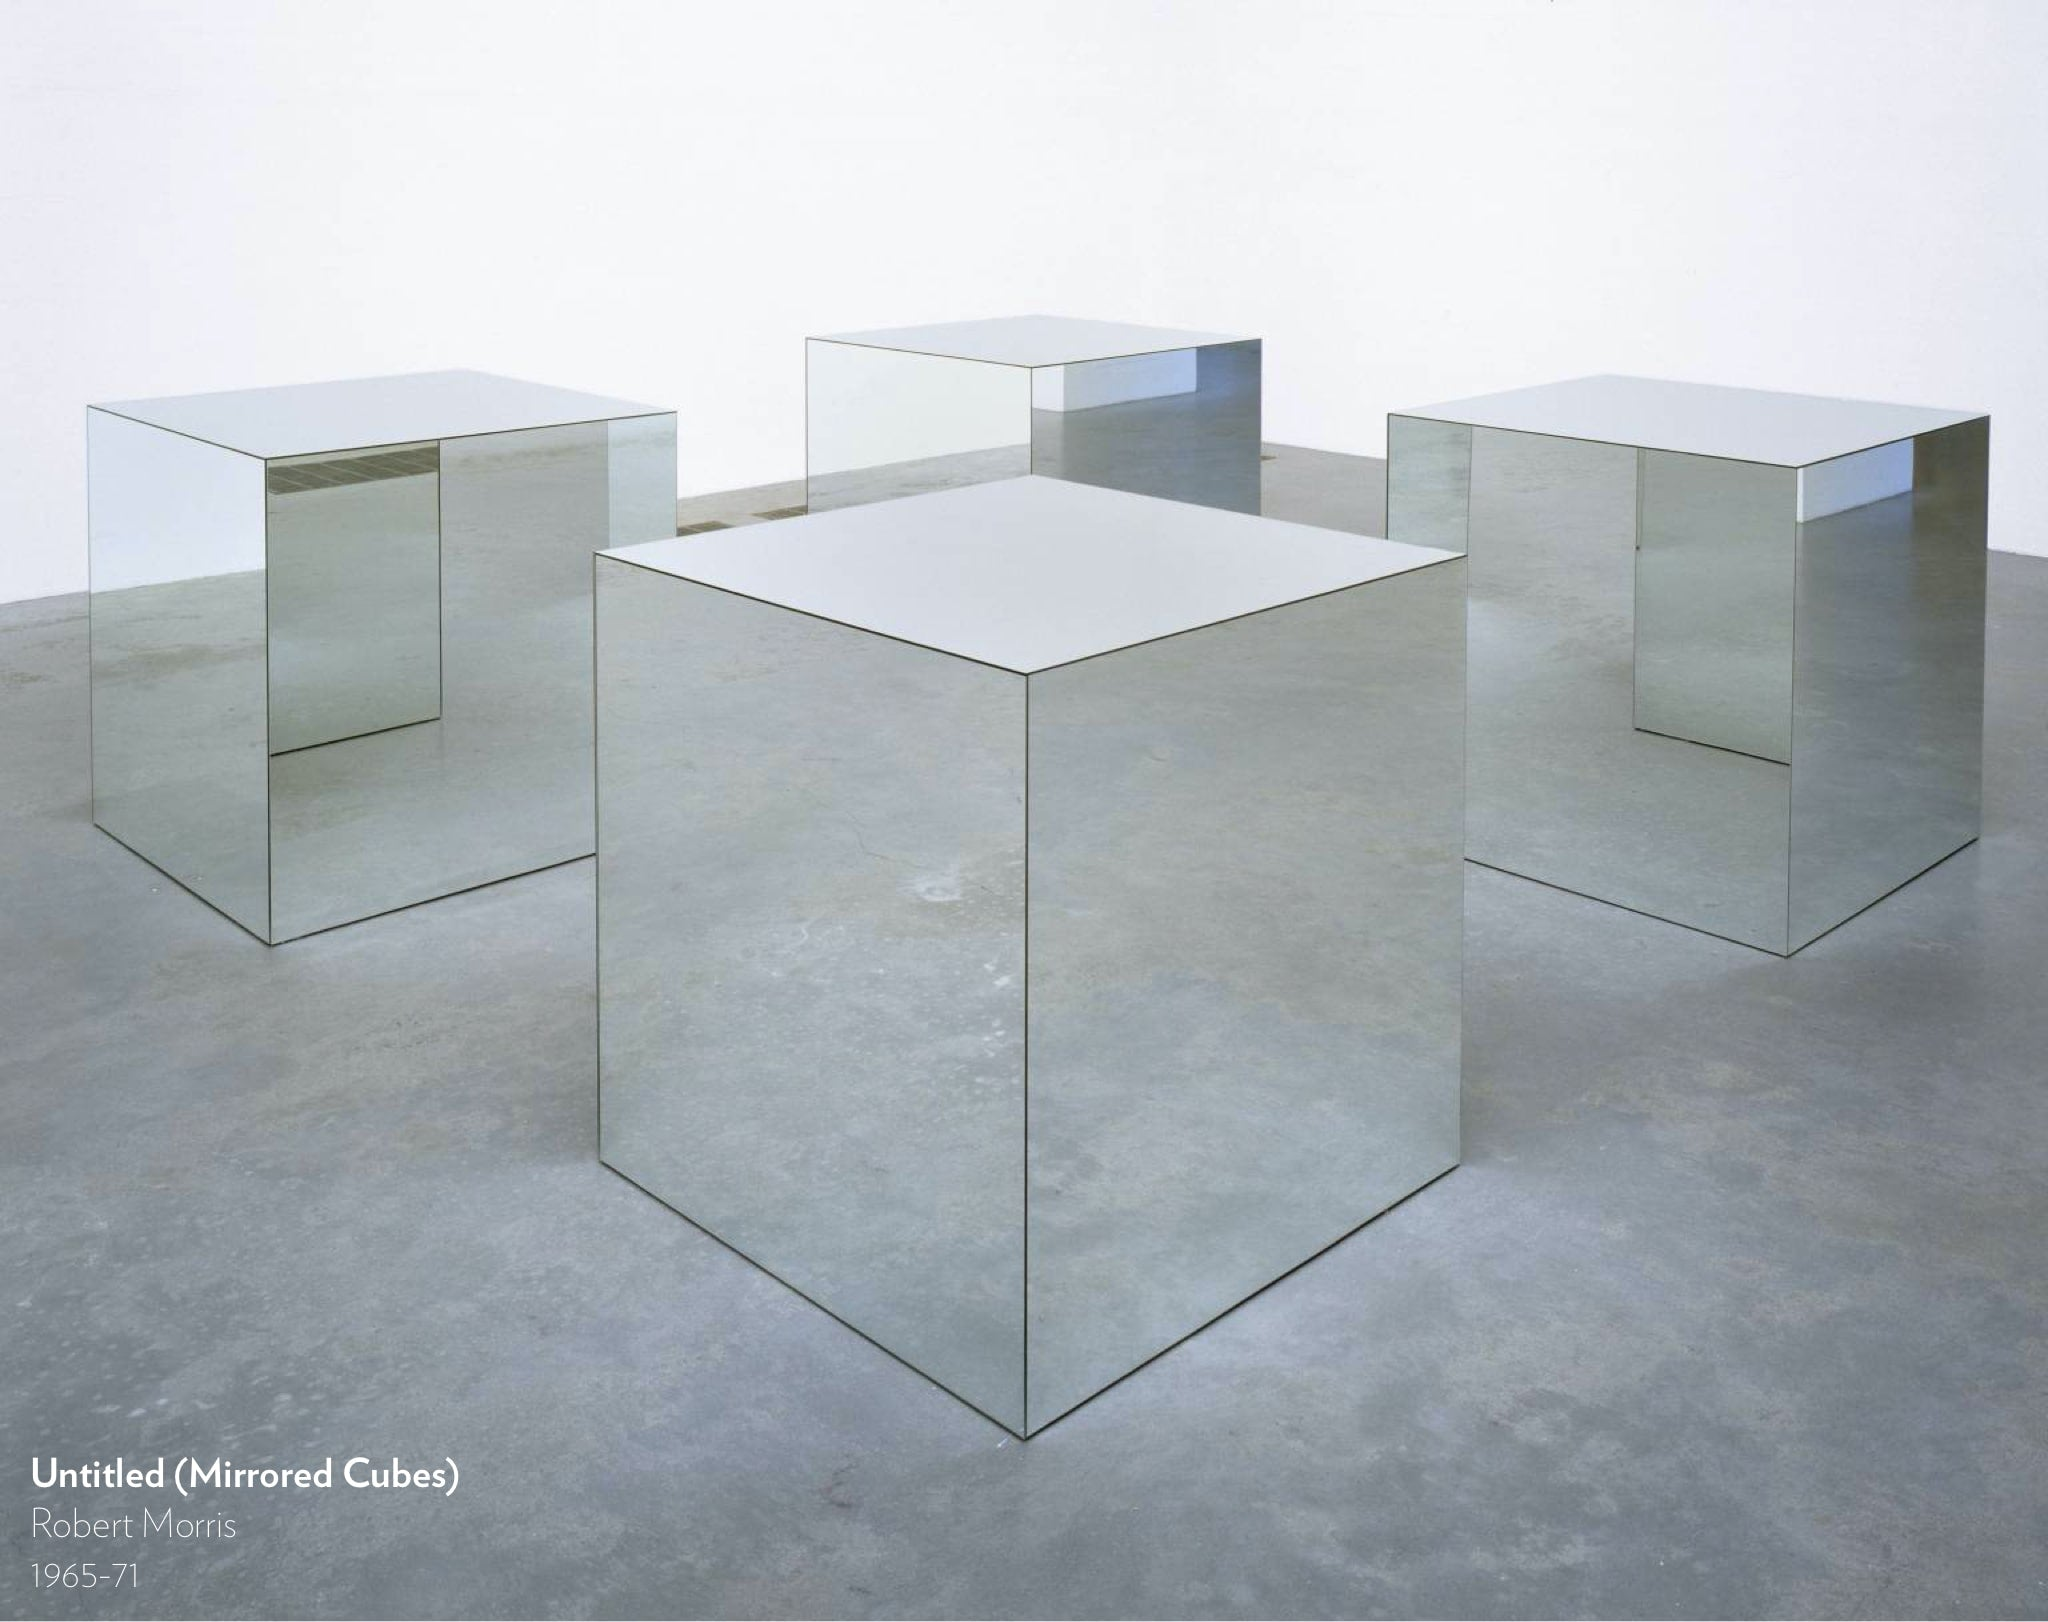 Untitled, Mirrored Cubes by Robert Morris, 1965 to 1971.